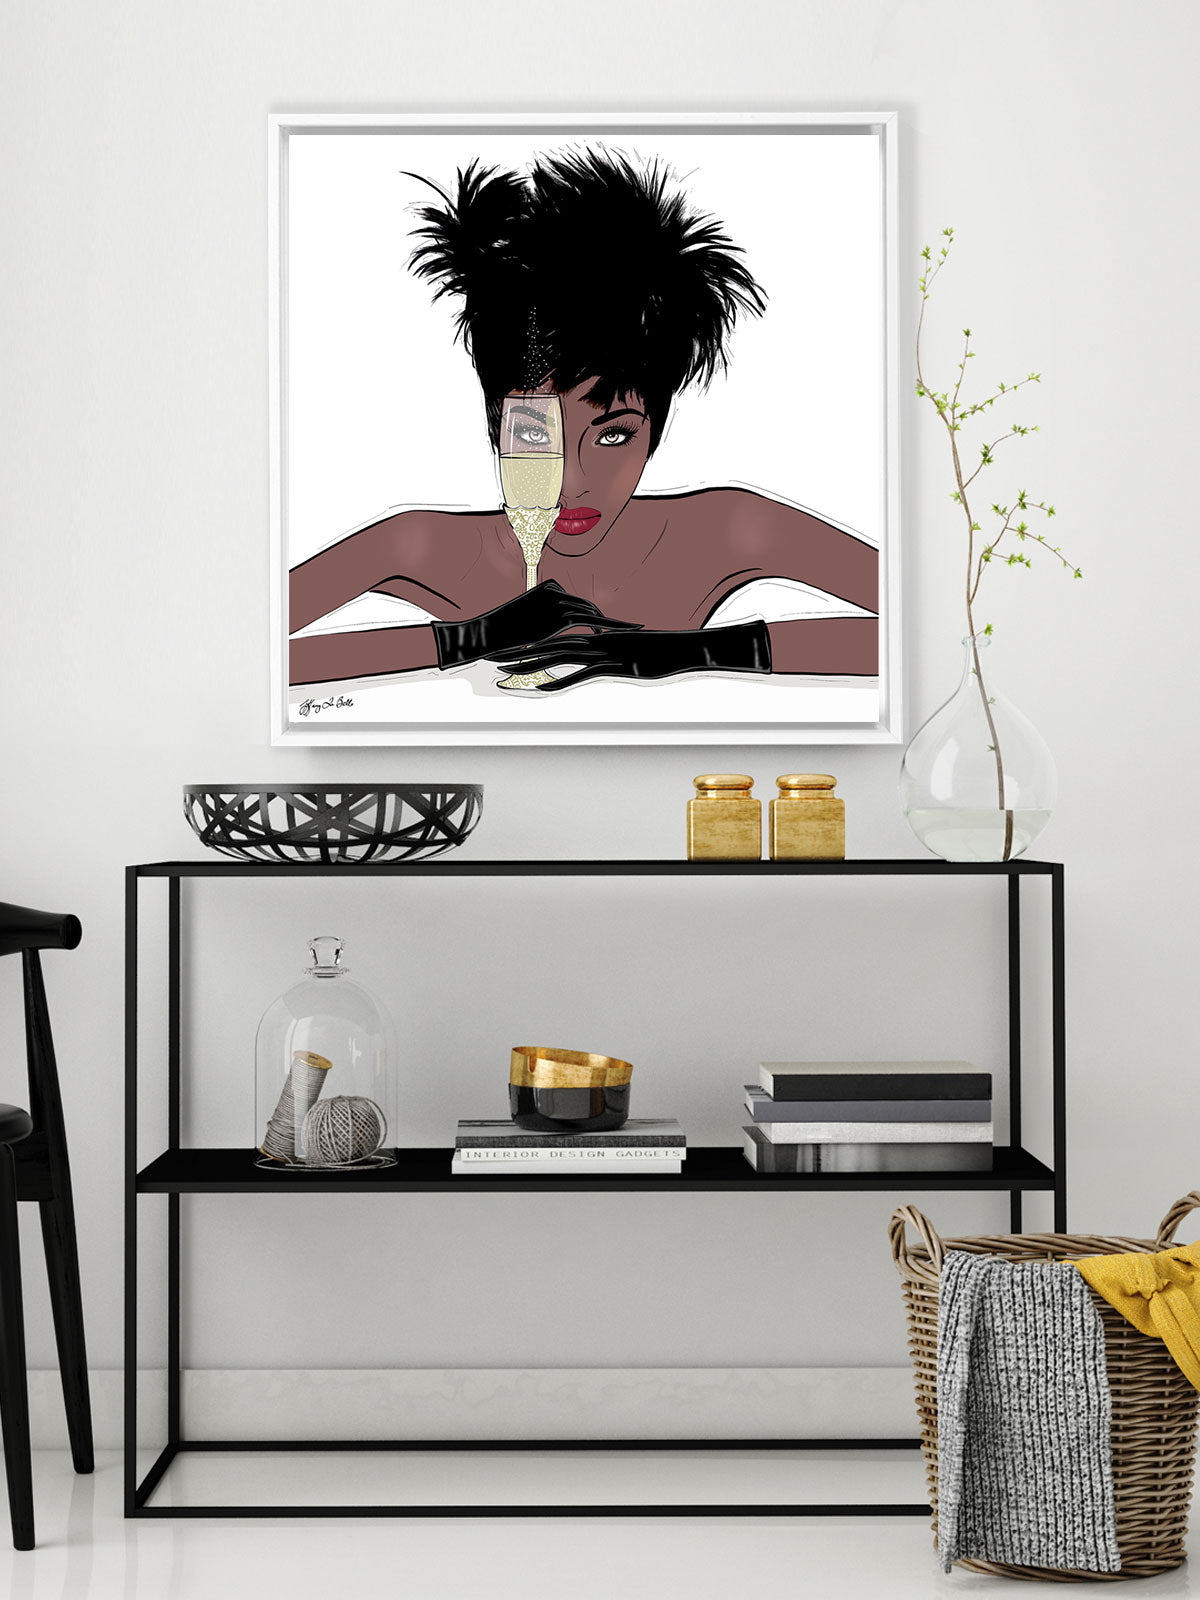 I See You - Illustration - Canvas Gallery Print - Unframed or Framed - Tiffany La Belle